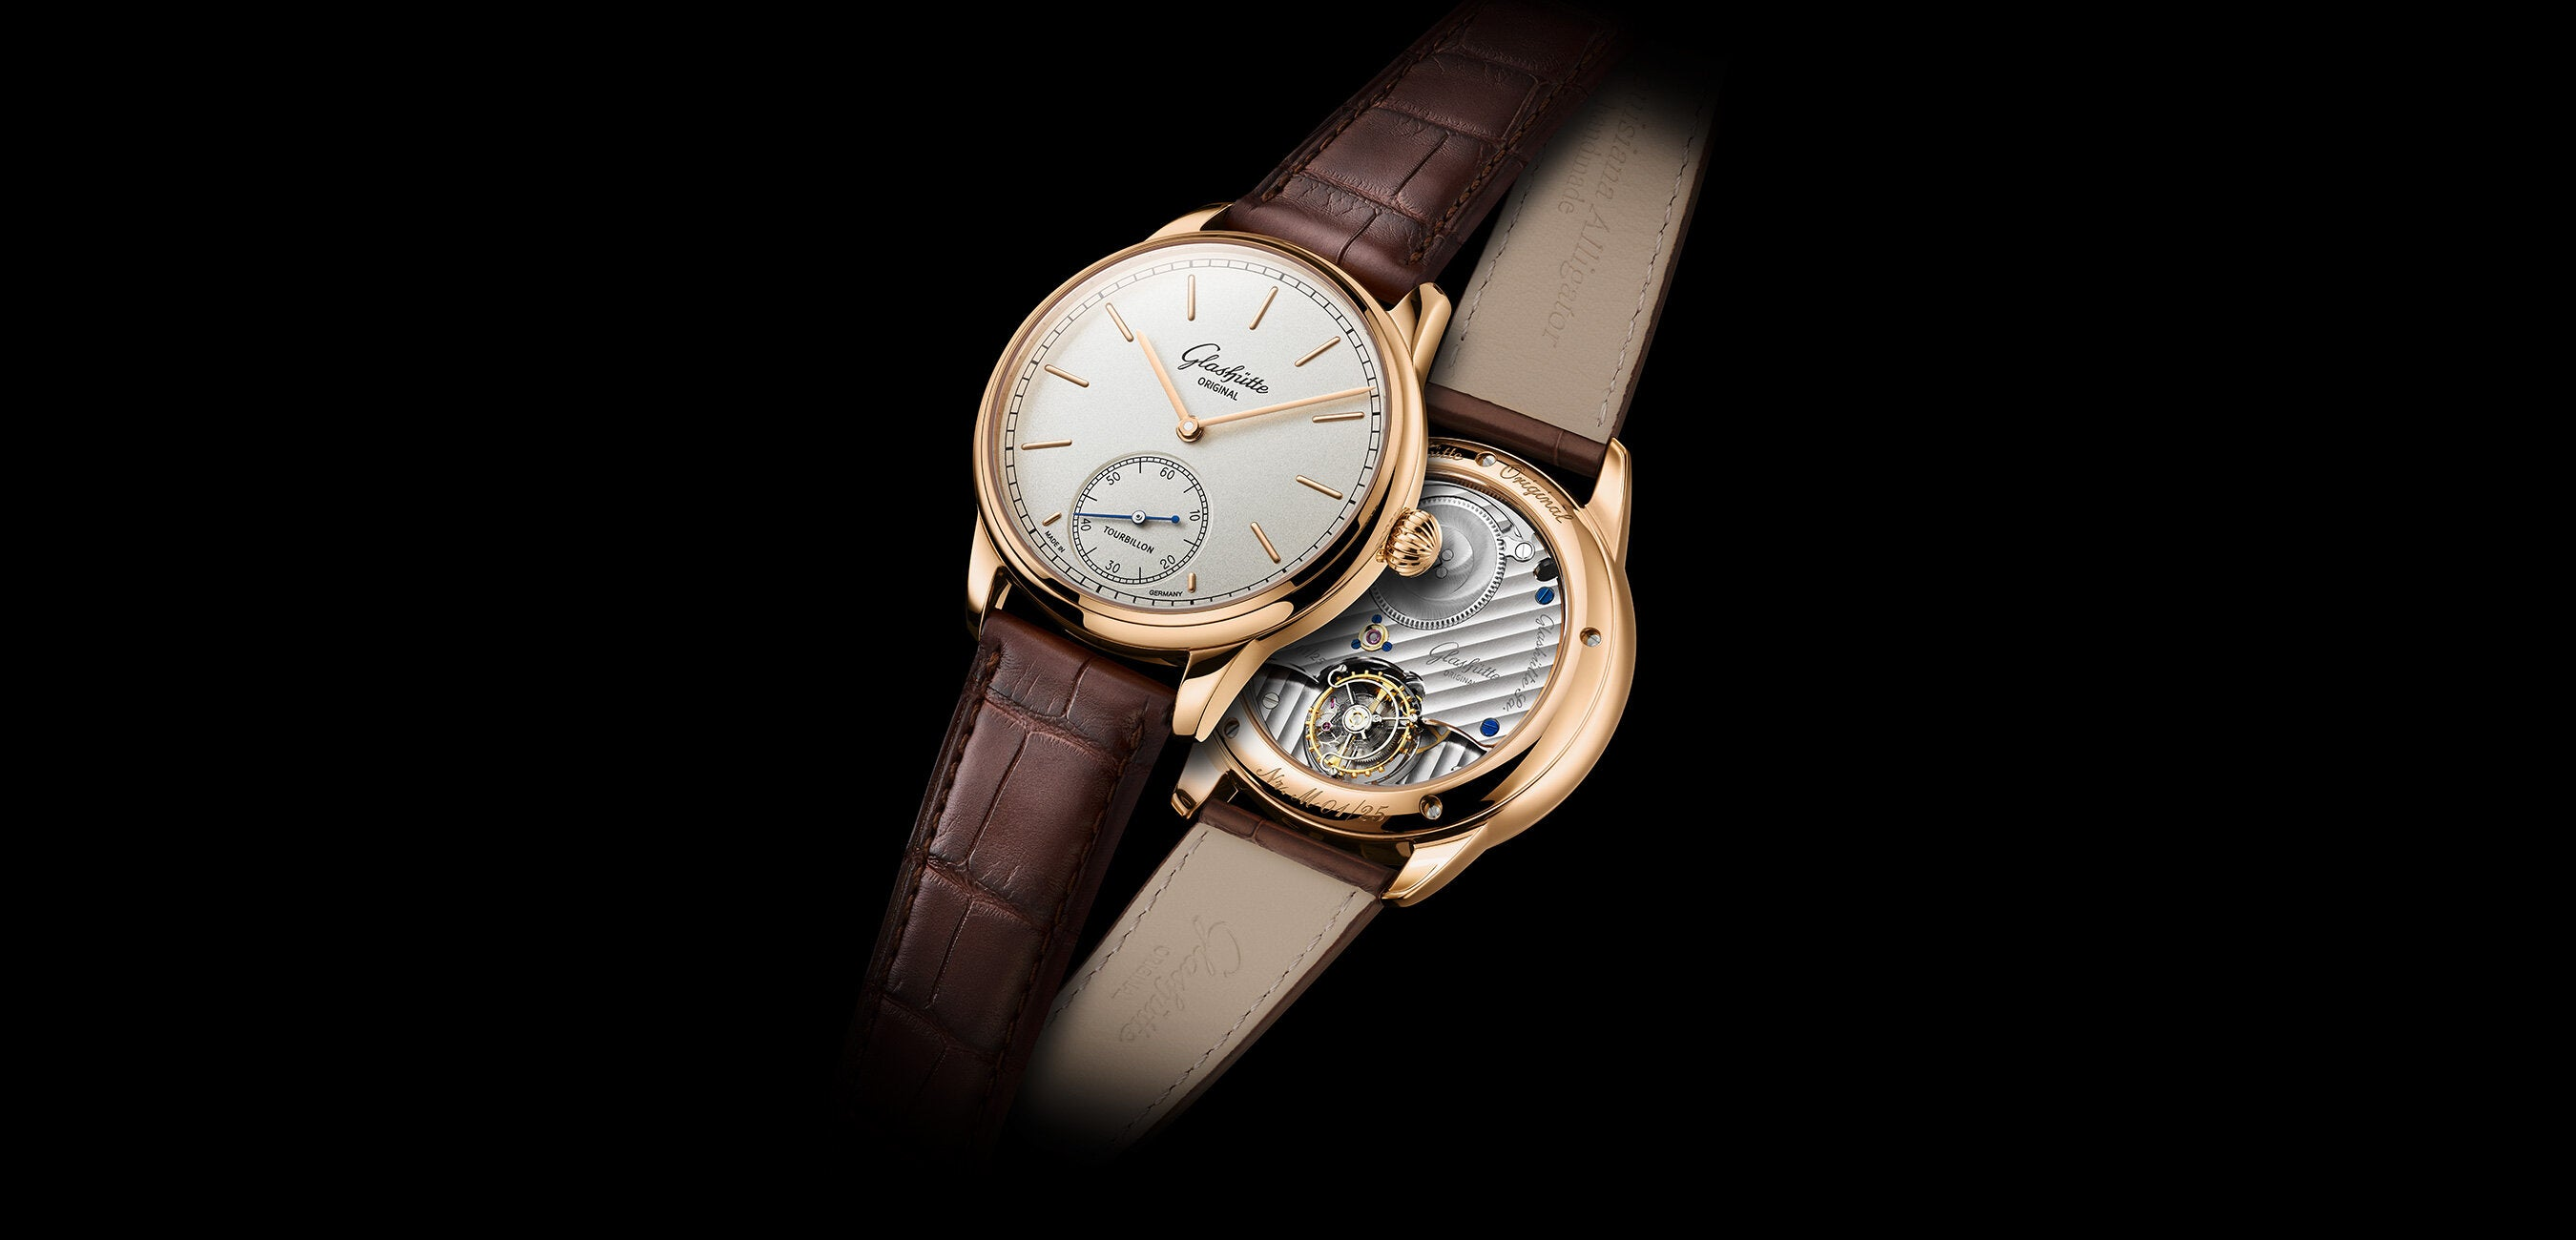 Tribute to a genius in the Glashütte art of watchmaking